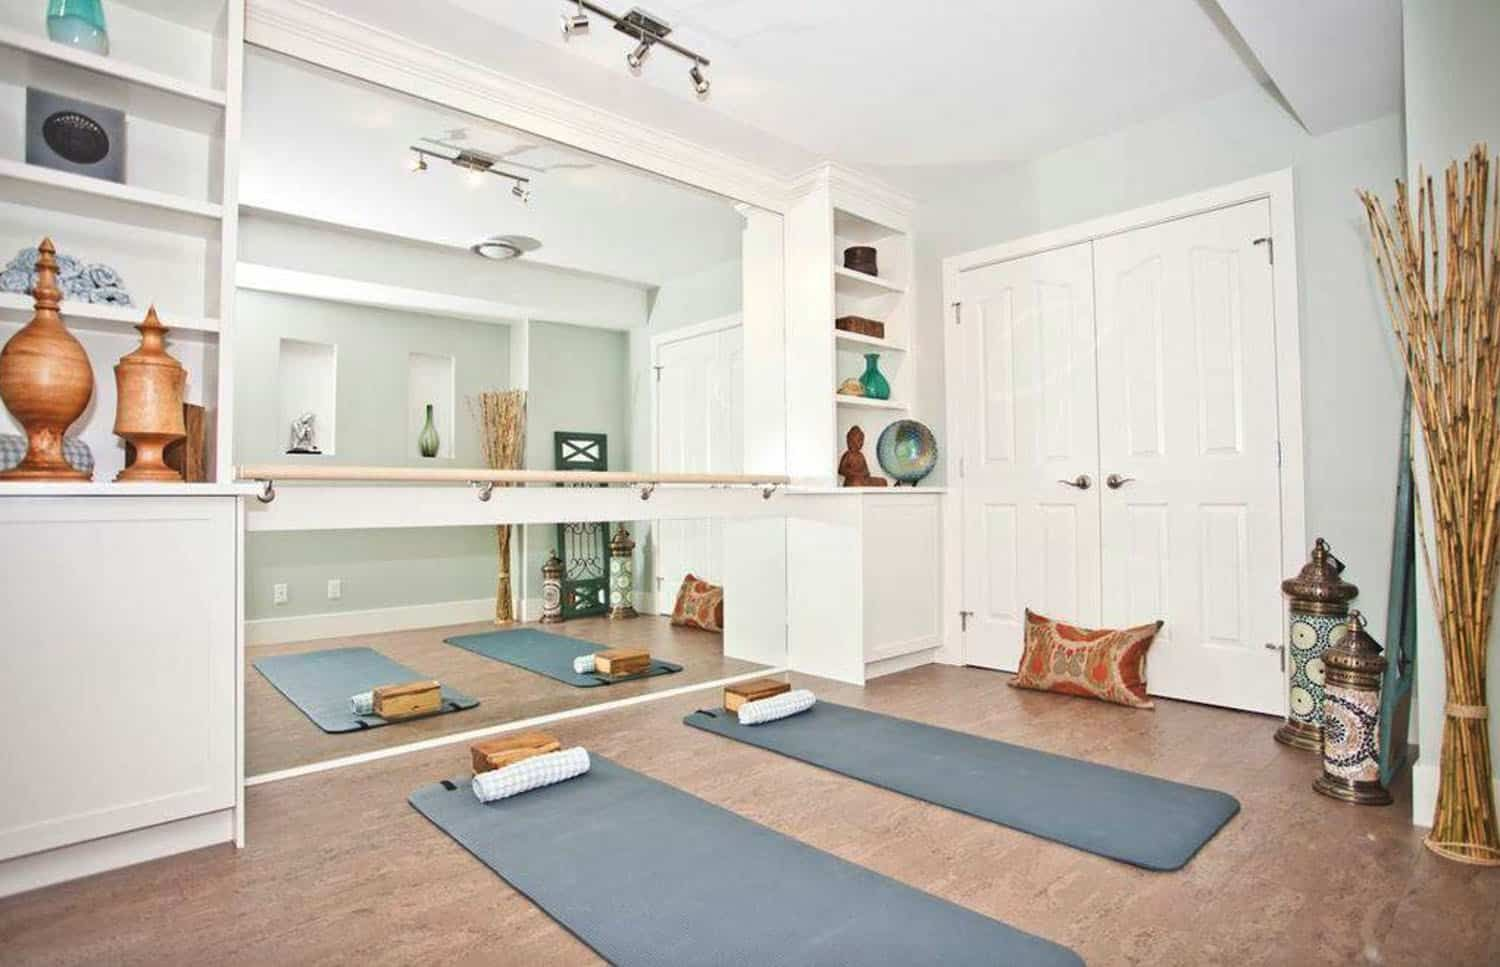 15 Amazing Home Yoga Studio Ideas For Relaxation And Meditation In 2020 Yoga Room Design Home Gym Flooring Yoga Studio Home